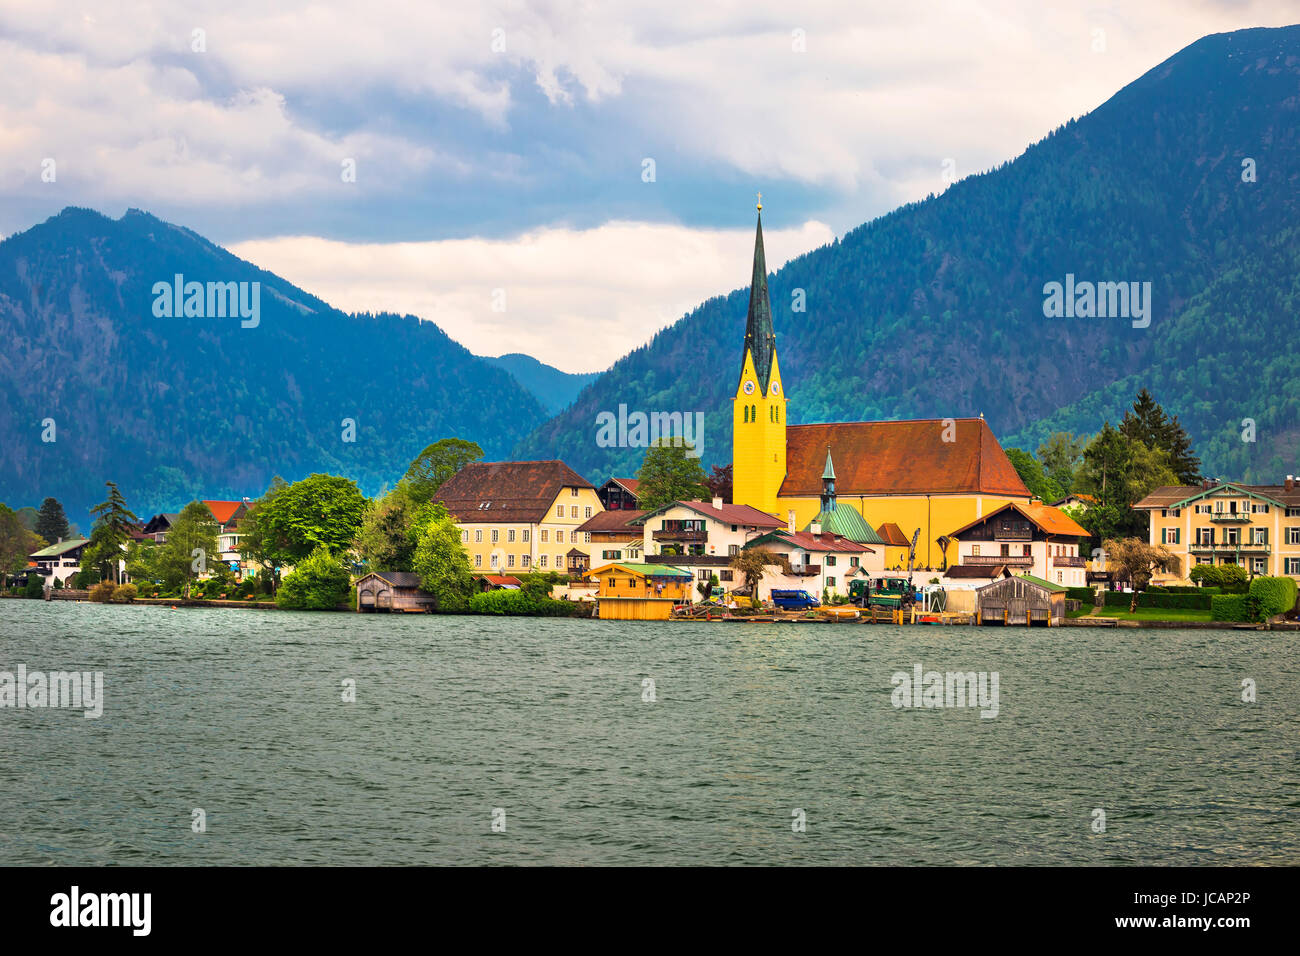 Tegernsee stockfotos tegernsee bilder alamy for Architektur und natur